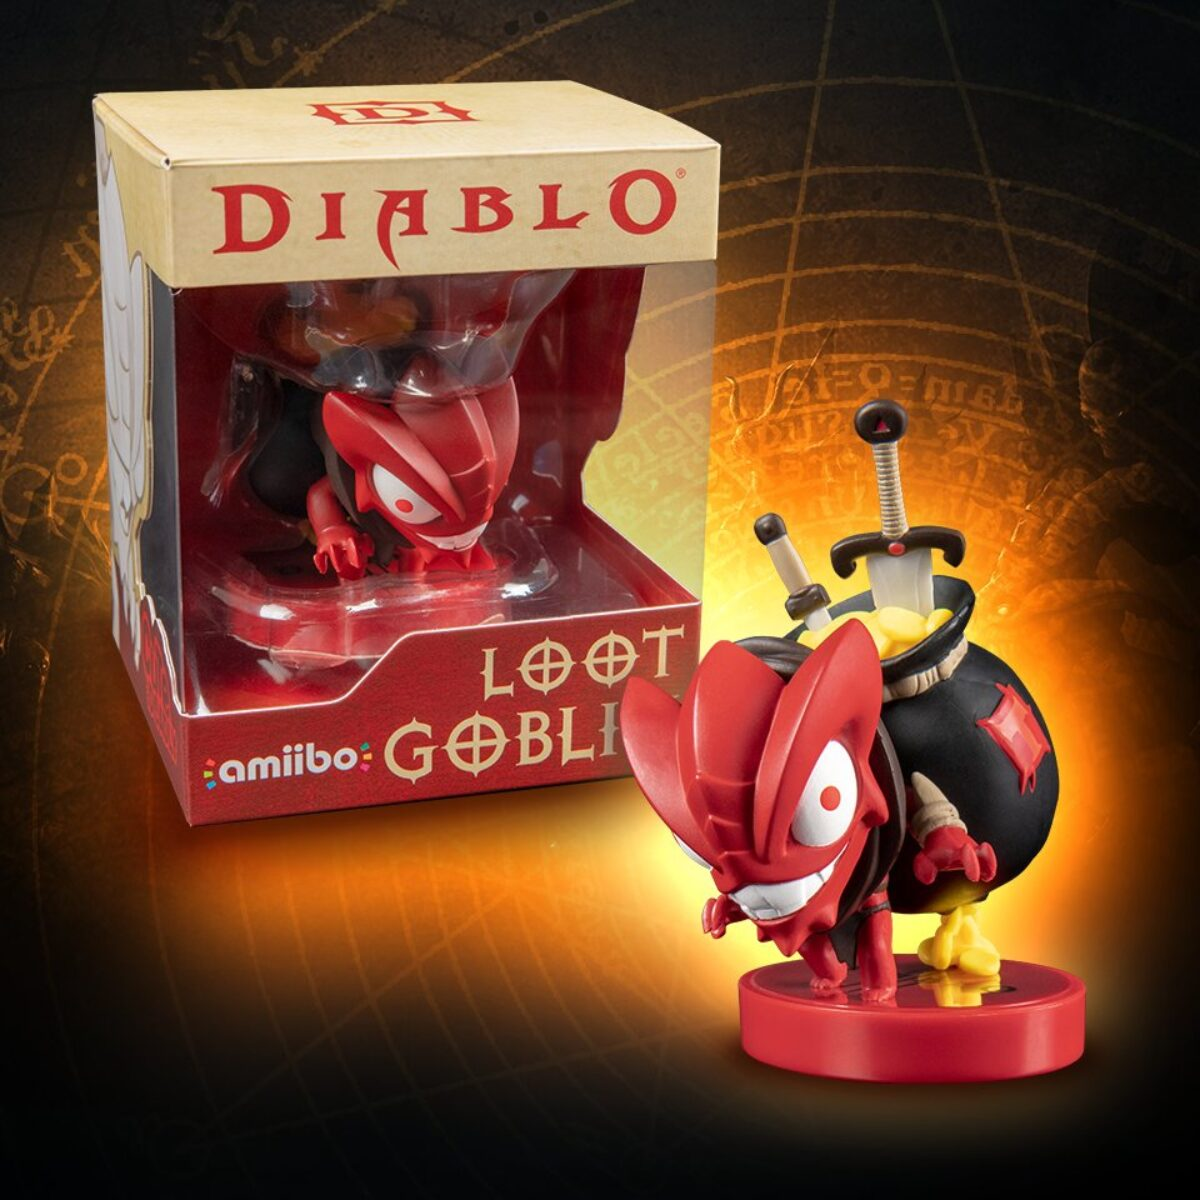 [Précommande] L'amiibo Loot Goblin de Diablo III: Eternal Collection à 14€99